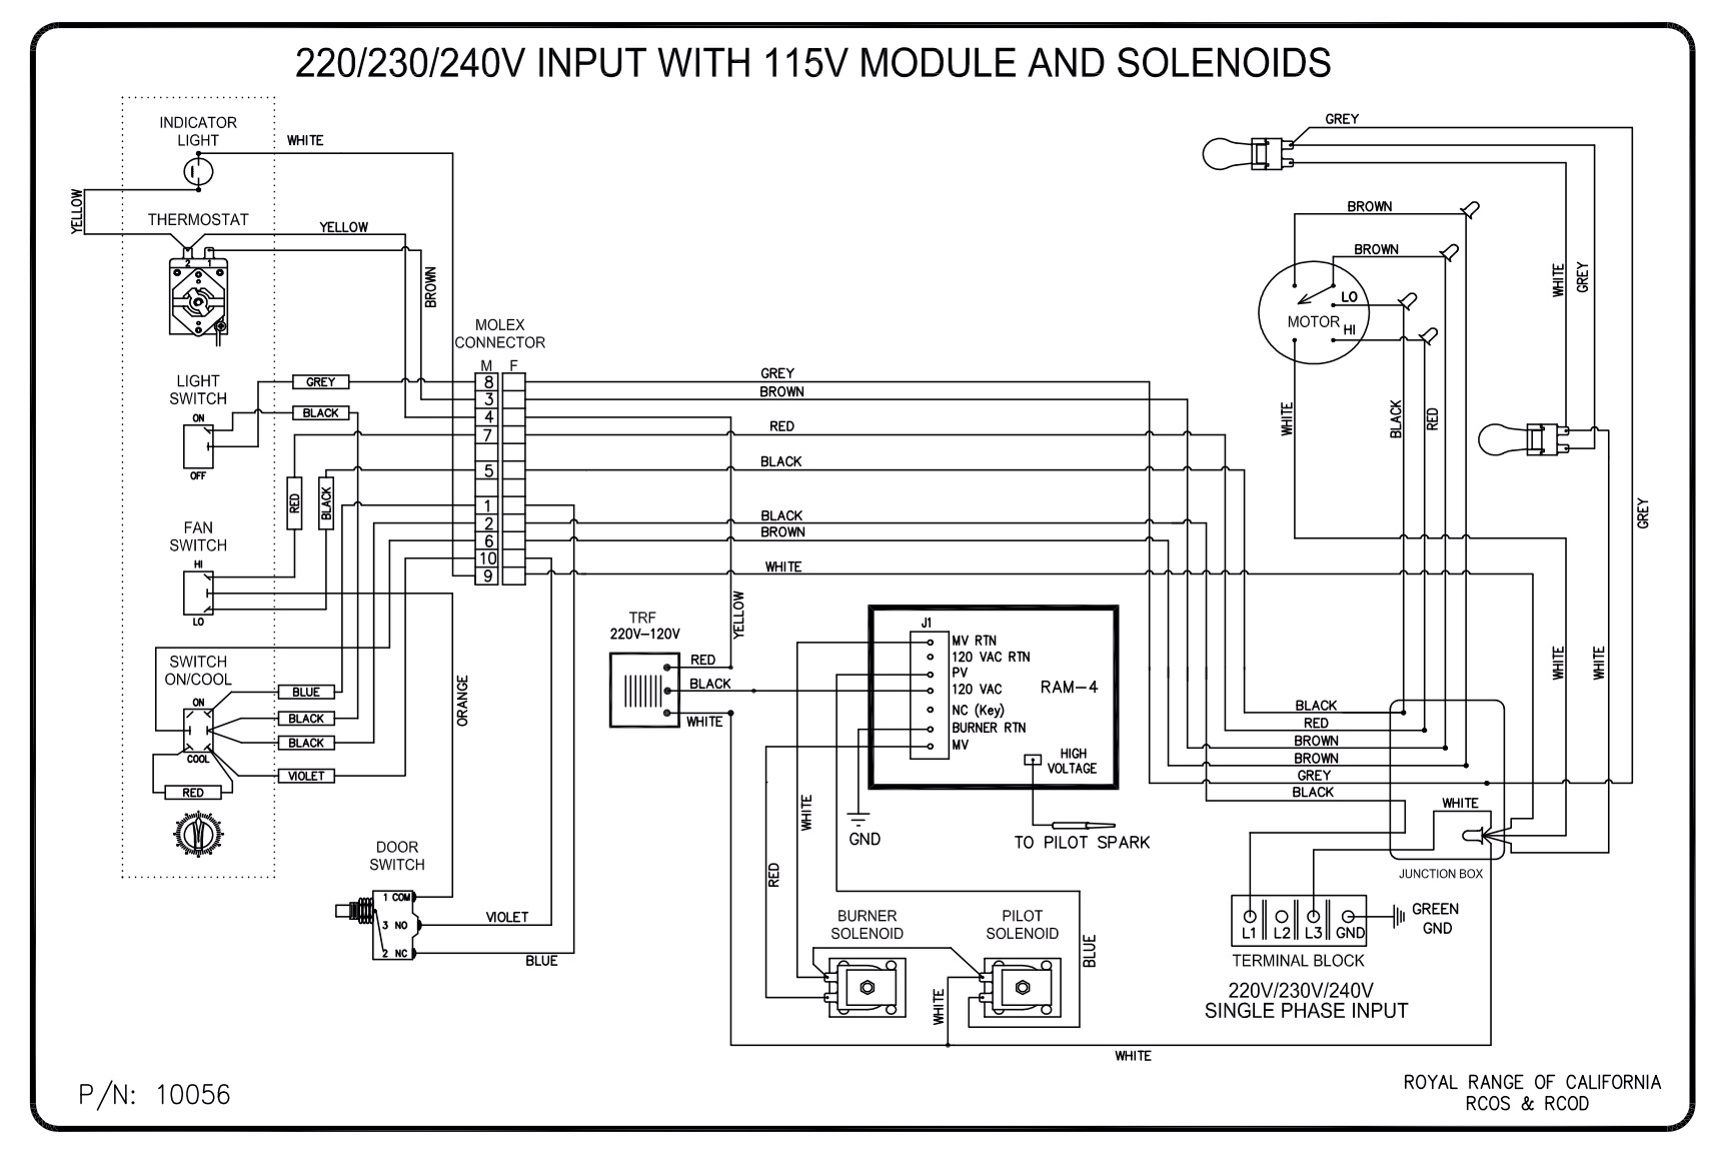 wiring schematic for the